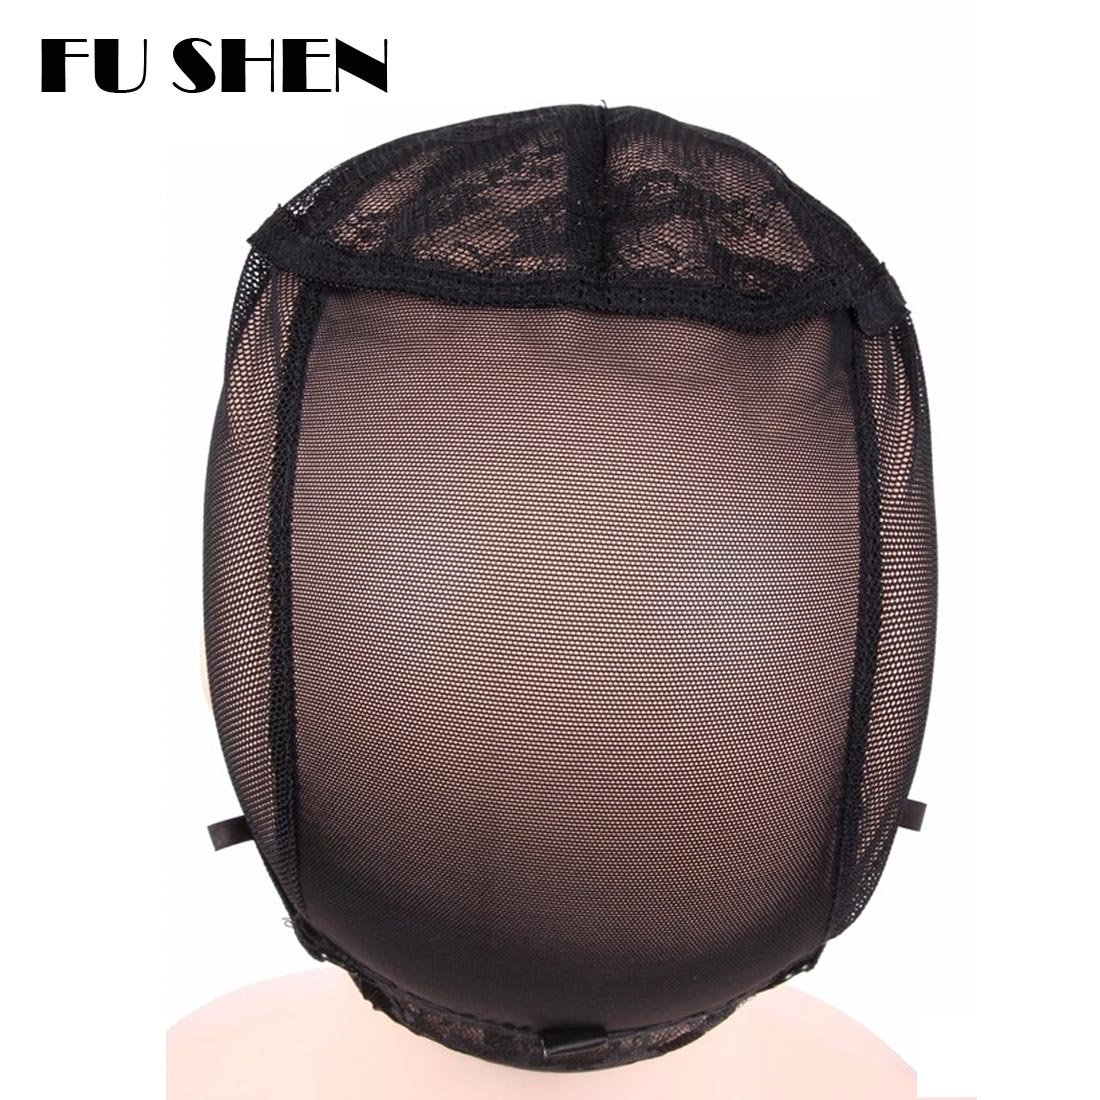 Elastic Wig Caps For Making Wigs Stretch Lace Weaving Cap Extra Large For Big Head with Adjustable Straps and Combs (Black 1 Piece XL-23Inch) by FU SHEN (Image #4)